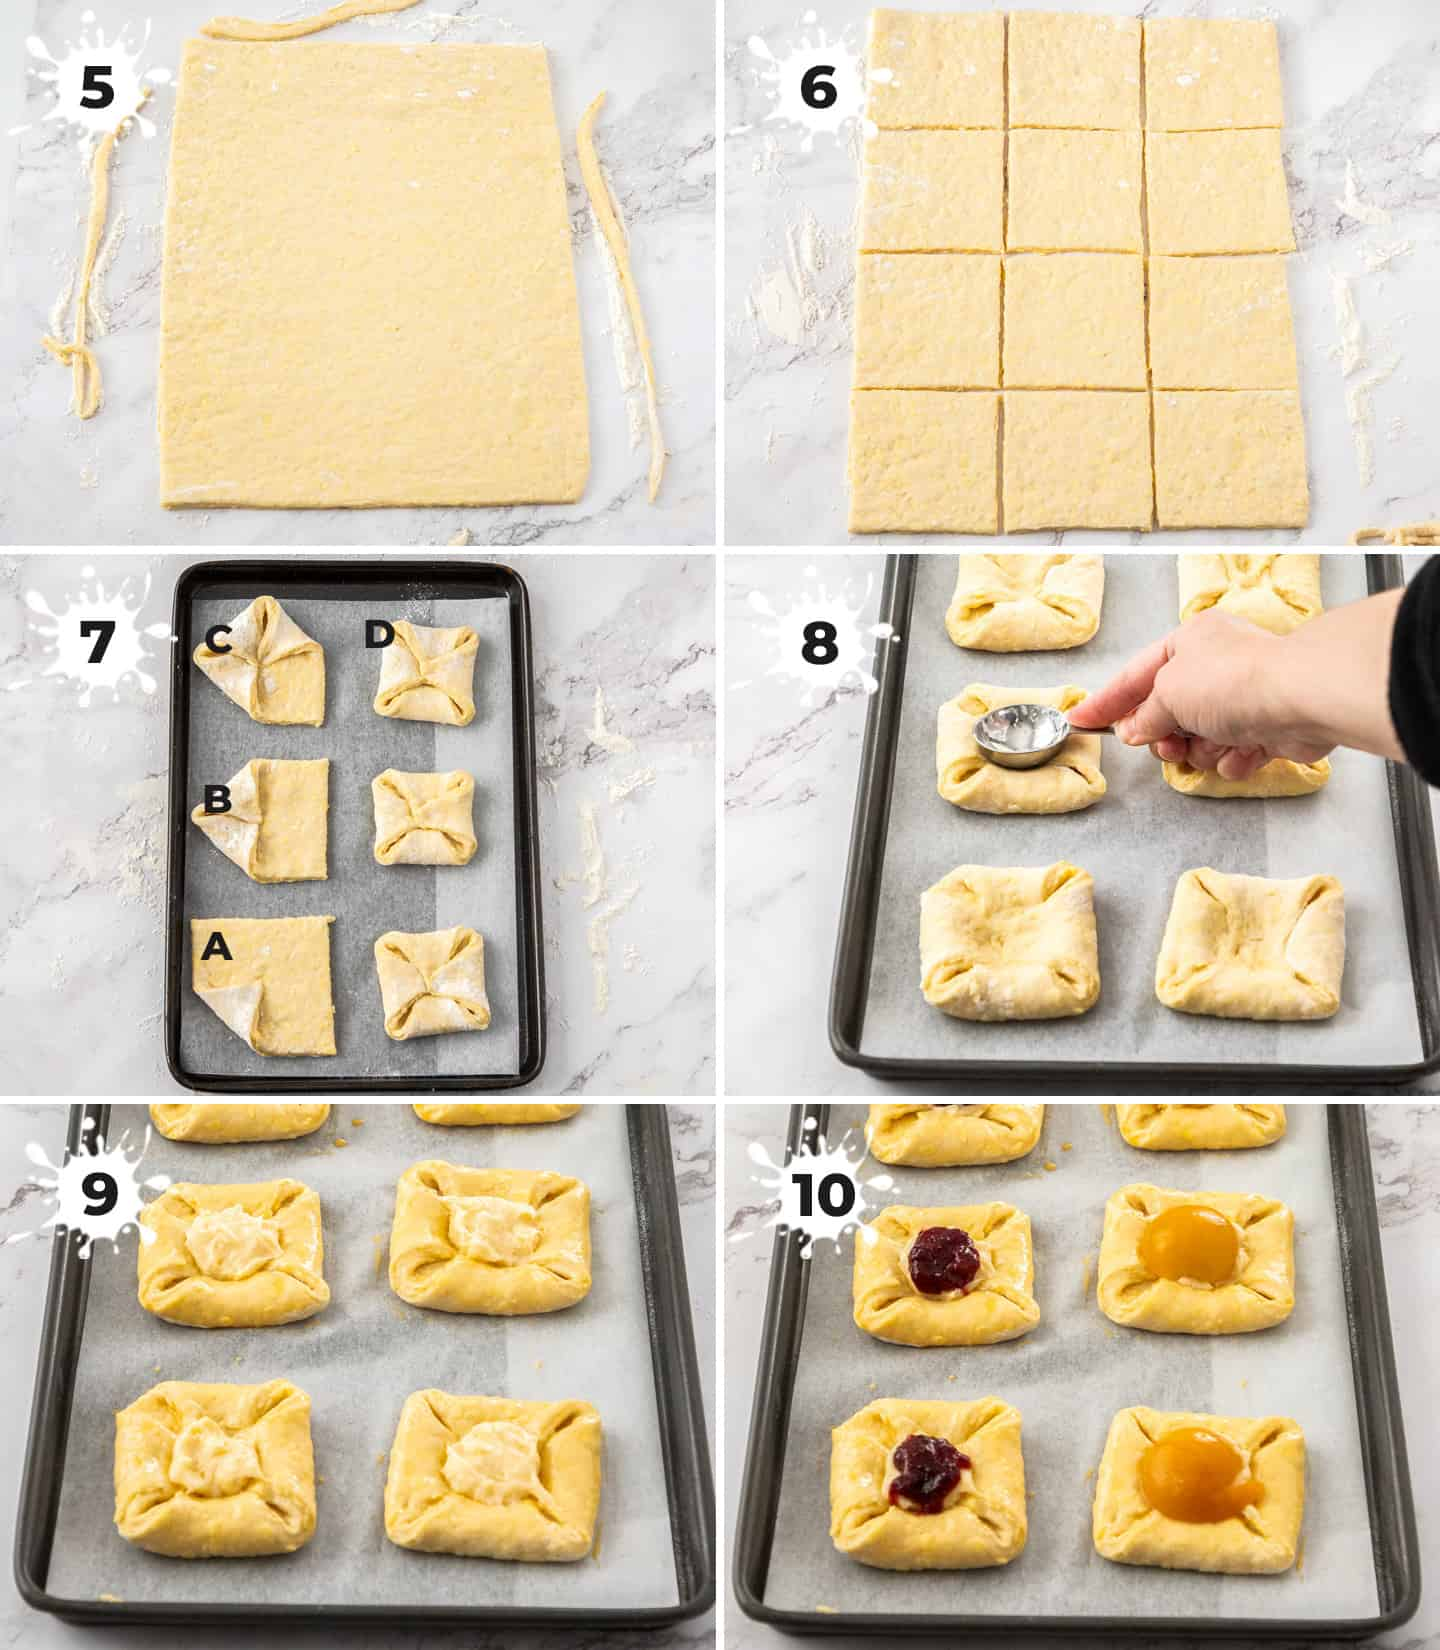 A collage of 6 images showing how to assemble custard danish.